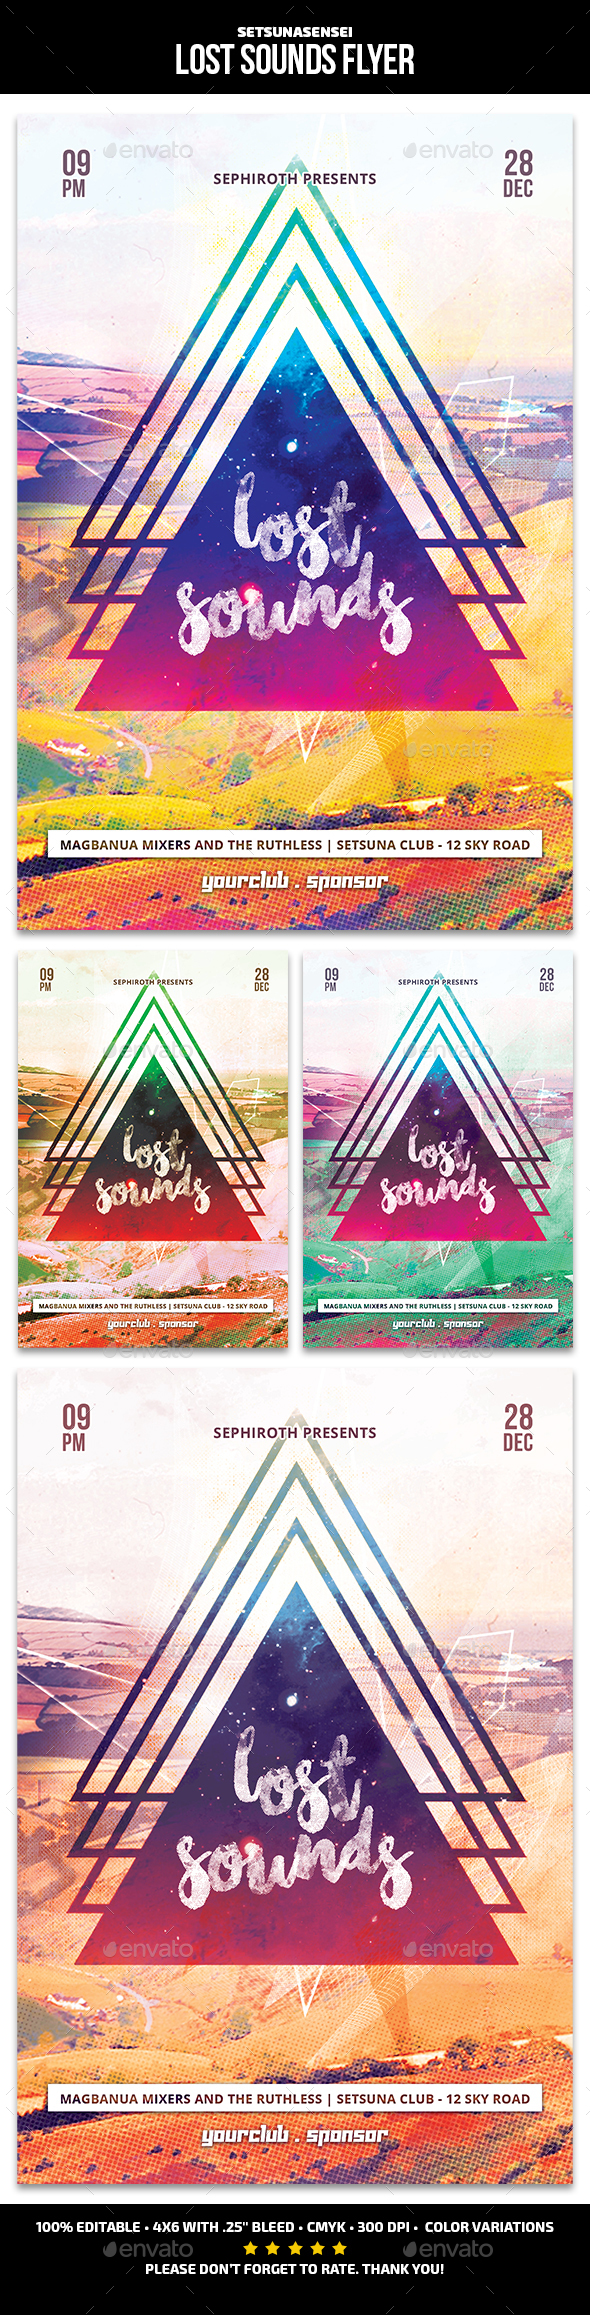 Lost Sounds Flyer - Clubs & Parties Events